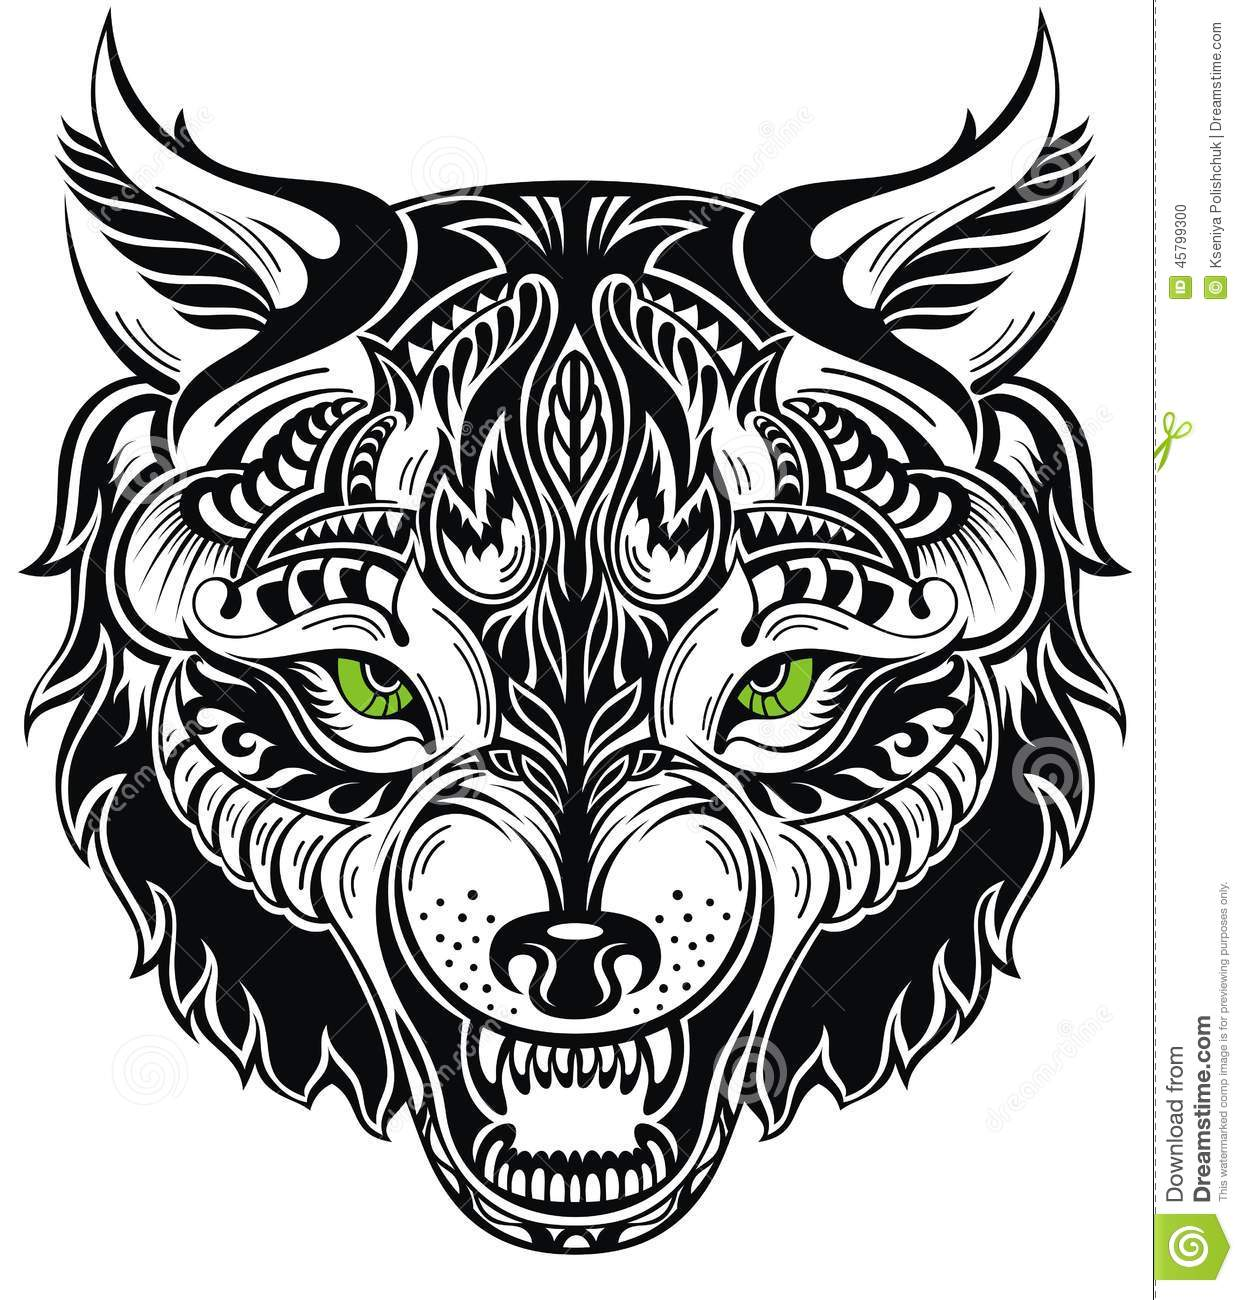 Totem animal wolf tattoo stock vector illustration of for Black and white tattoo artists